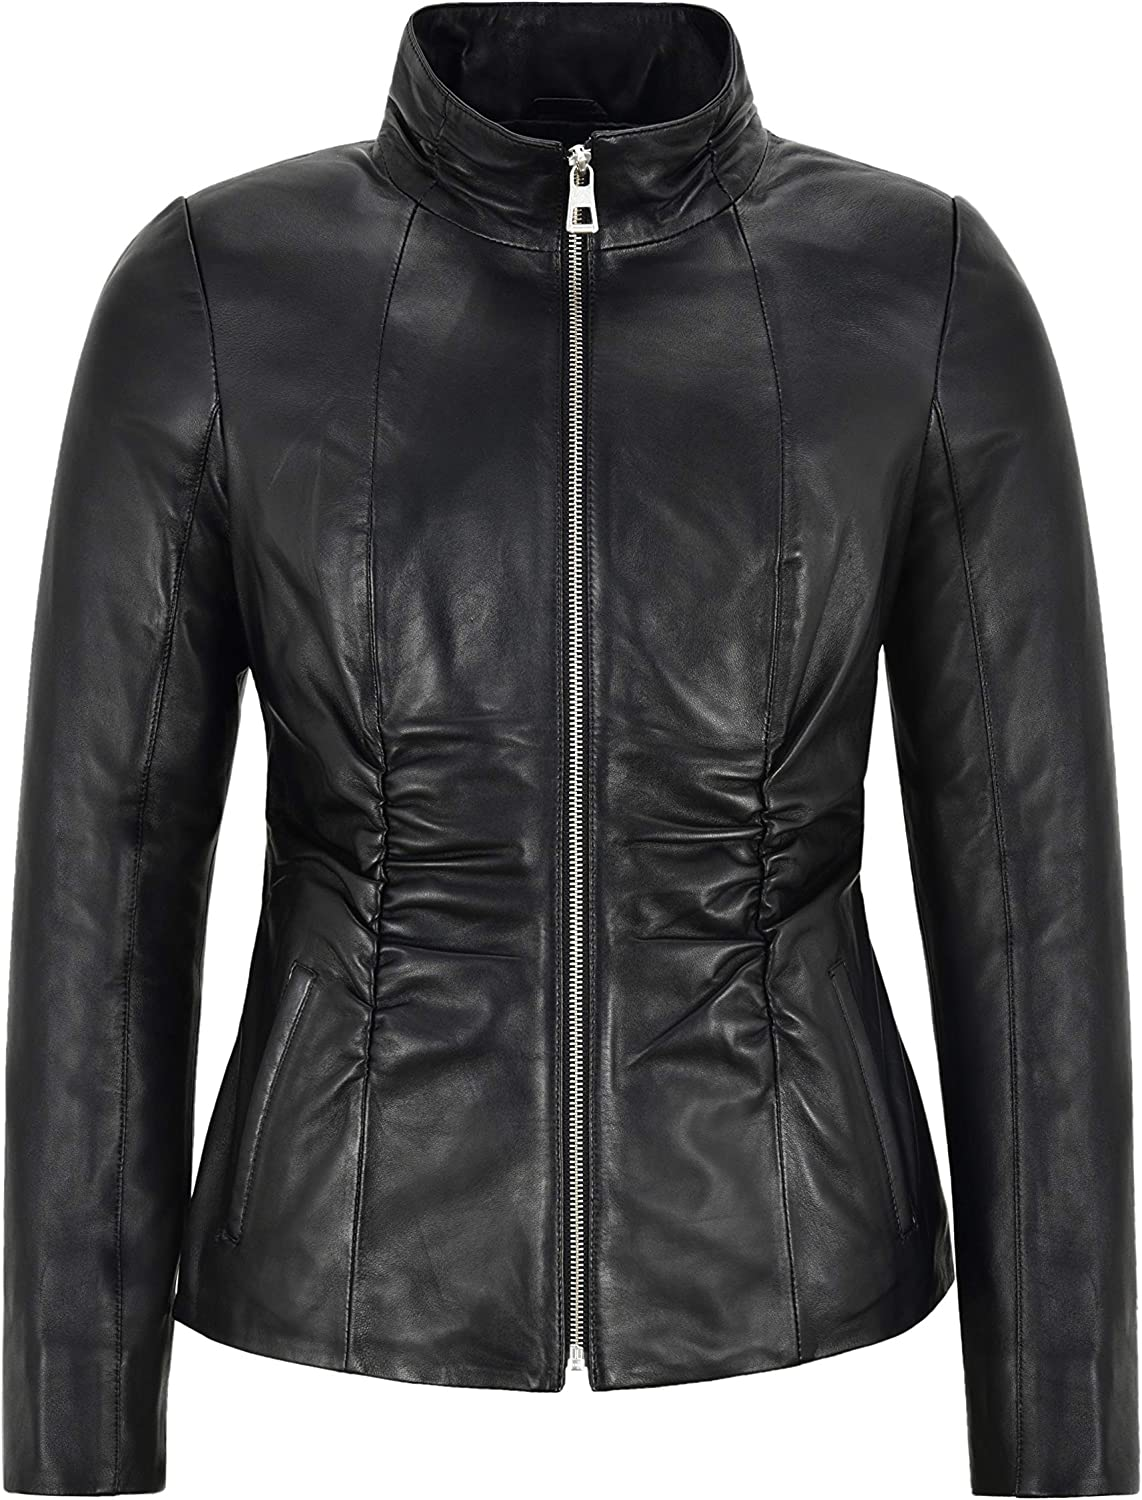 Boutique Victoria Ladies Shirrings Fashion Leather Jacket Black 100% Real Leather 13107